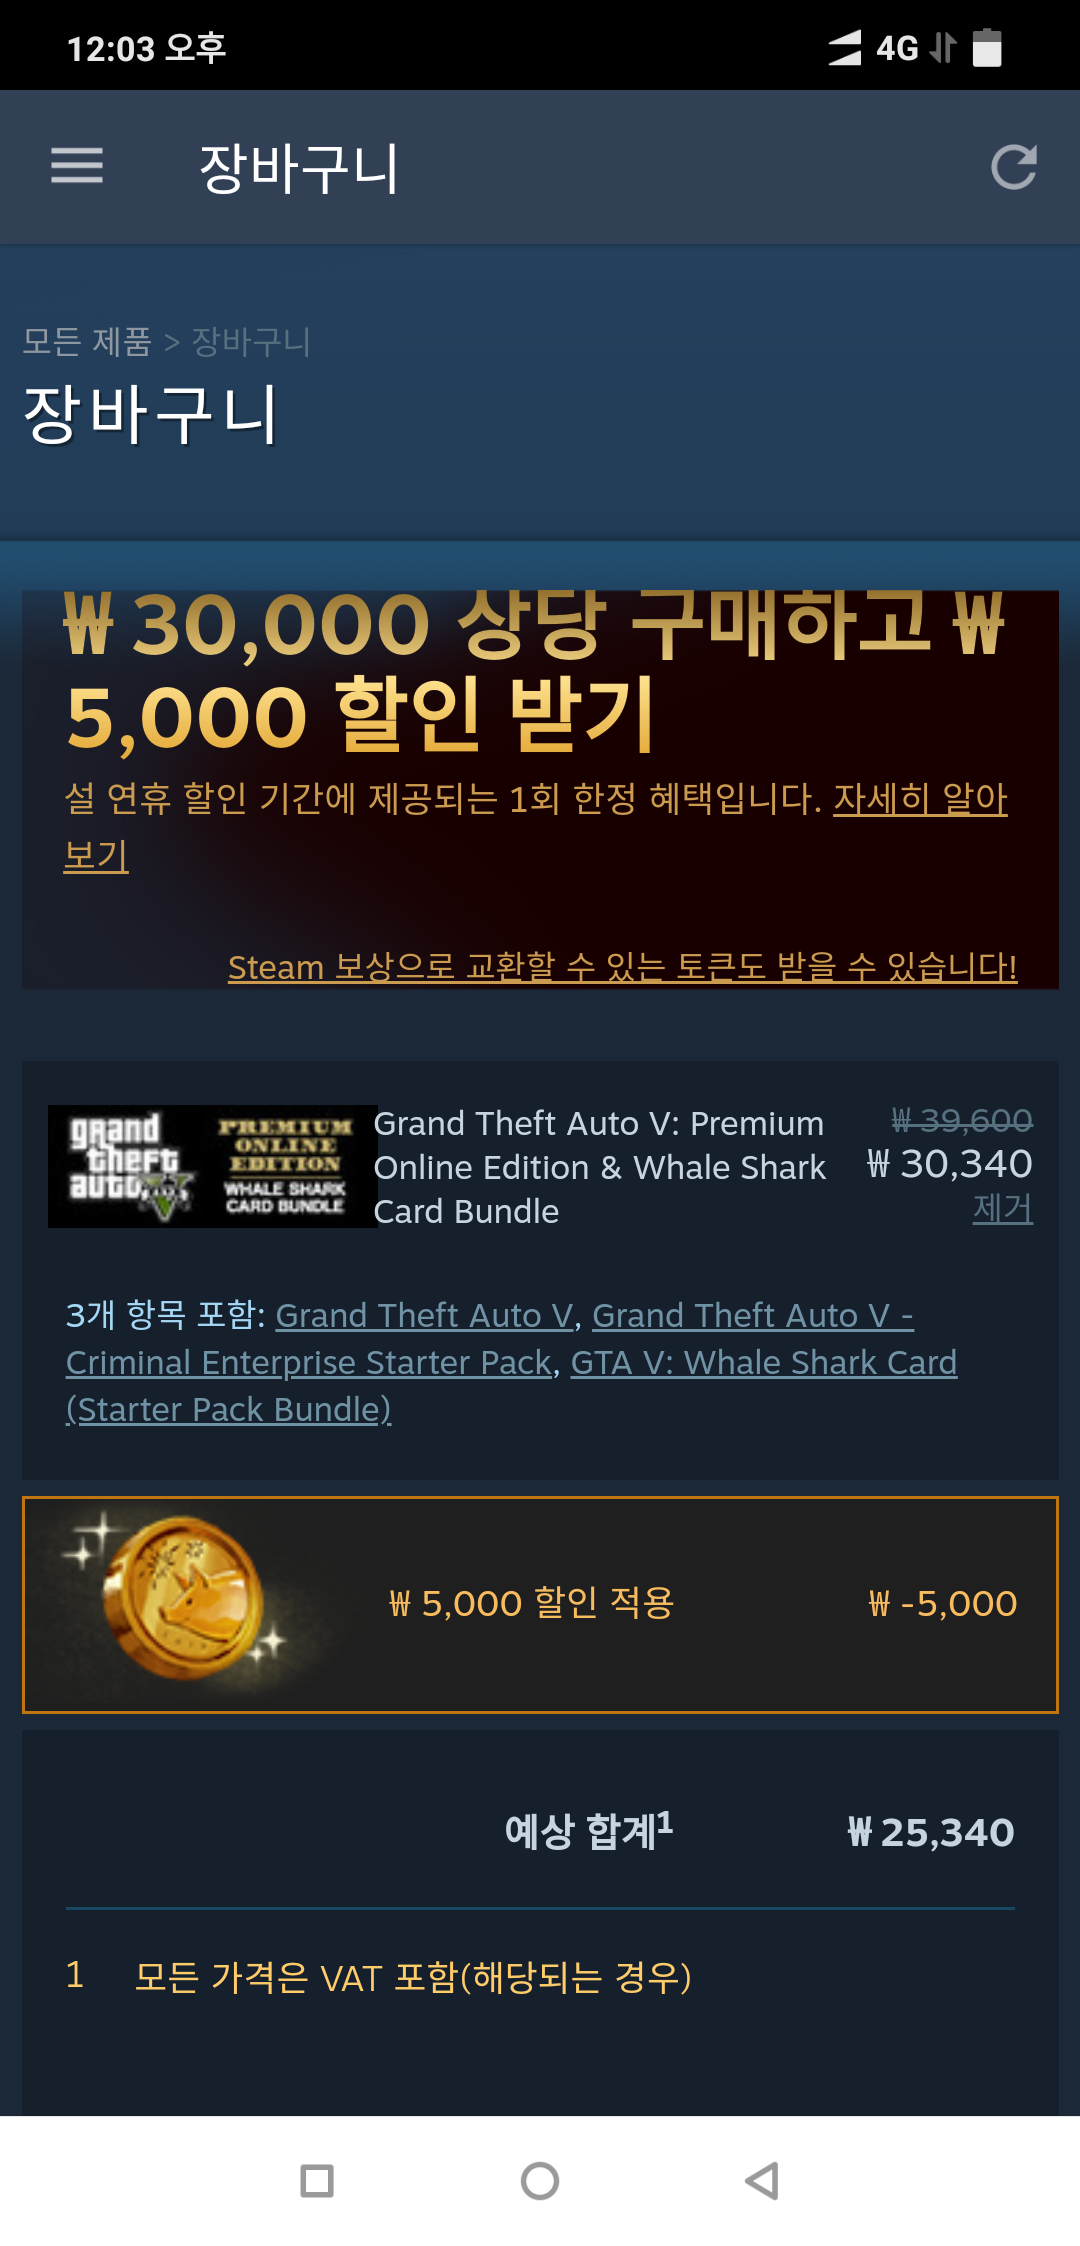 Screenshot_2019-02-05-12-03-25-387_com.valvesoftware.android.steam.community.png : 이번 스팀 세일... 어떤게 좋을까요??